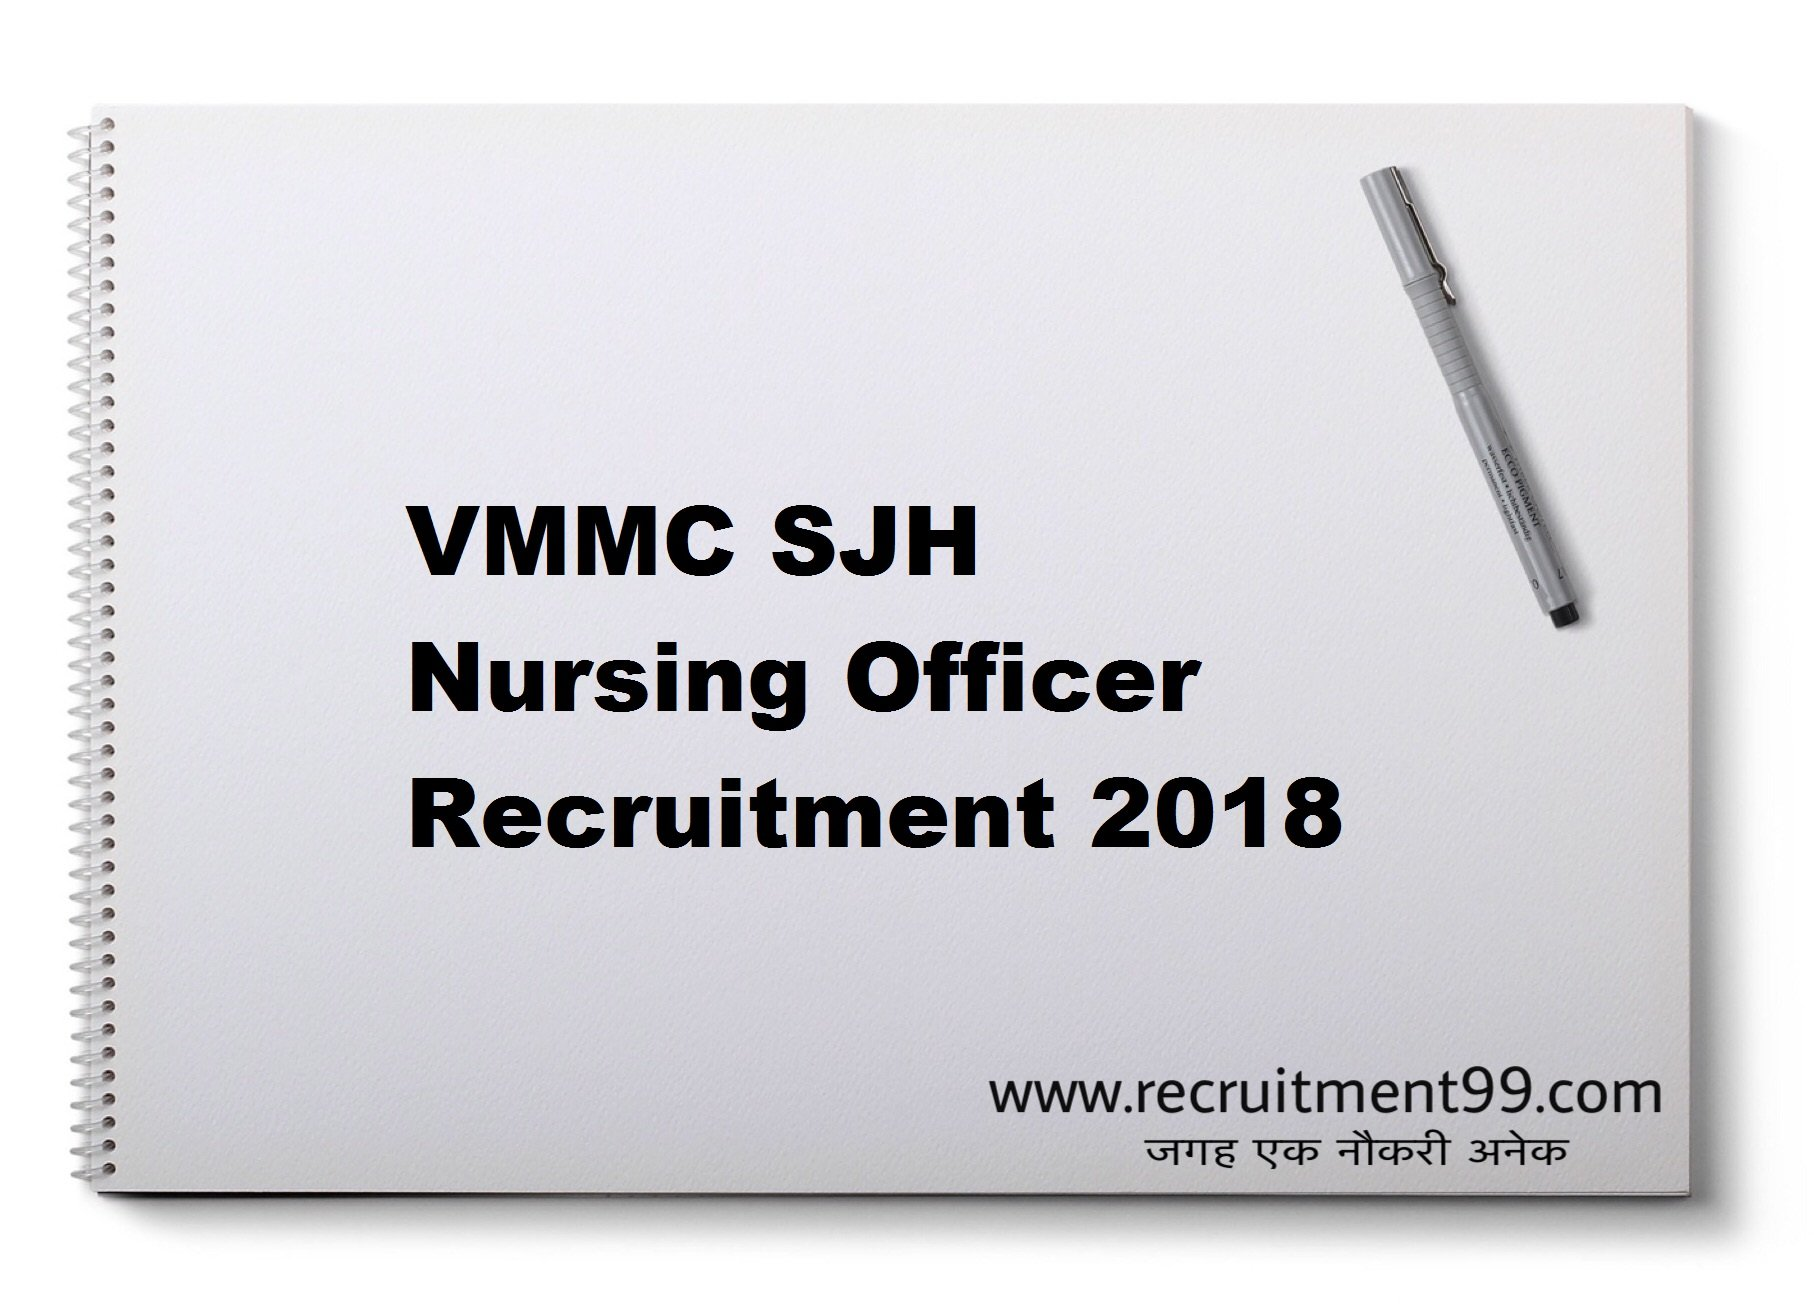 VMMC SJH Nursing Officer Recruitment Admit Card Result 2018